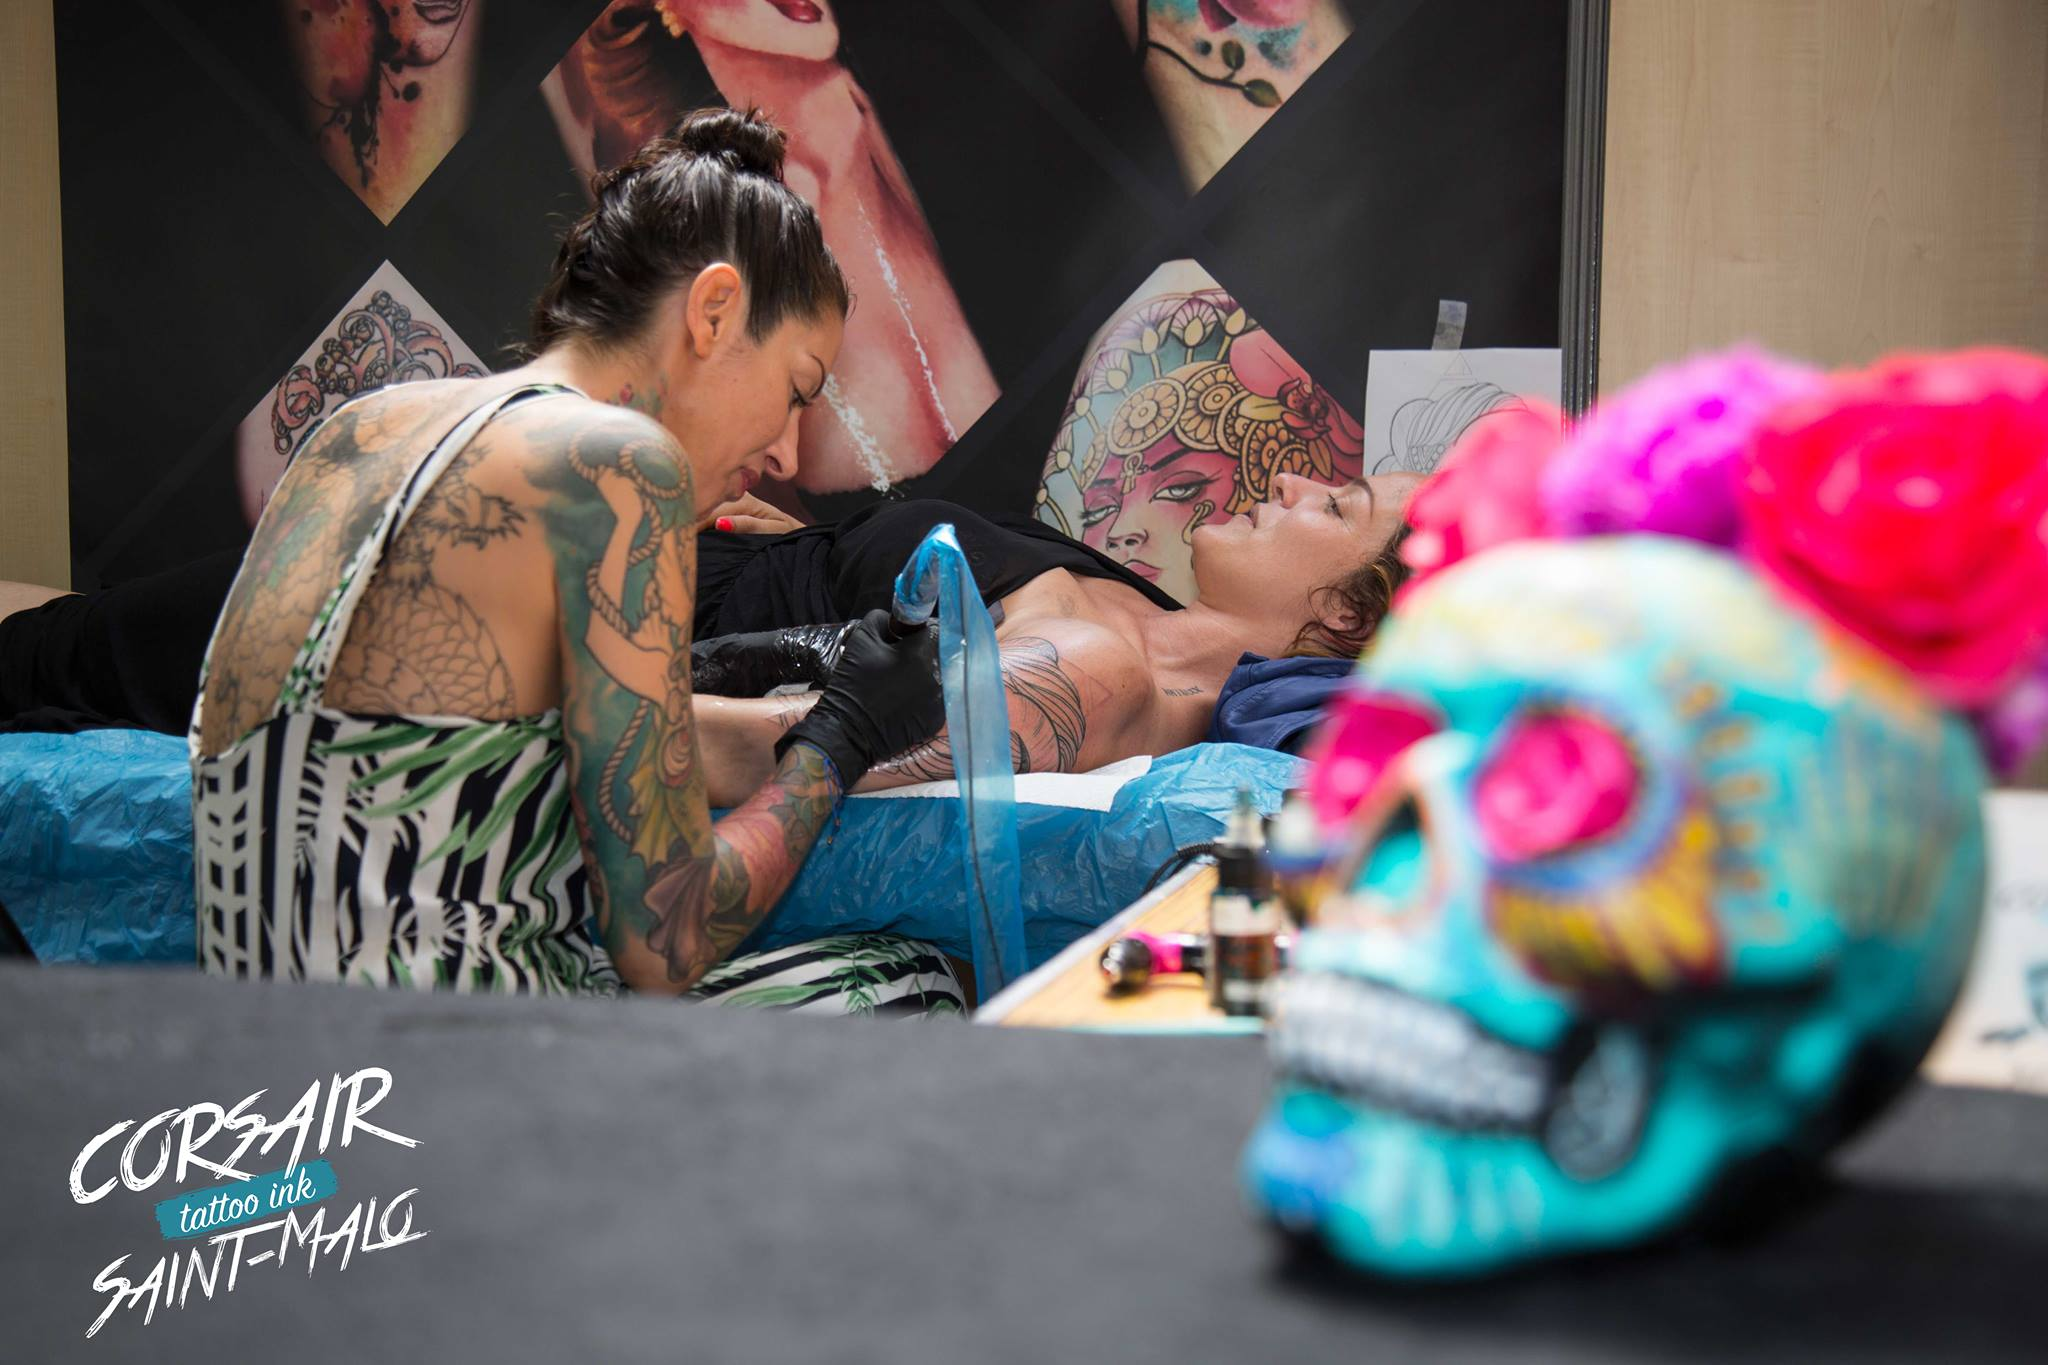 meilleure-convention-tatouage-france-corsair-tattoo-ink-saint-malo